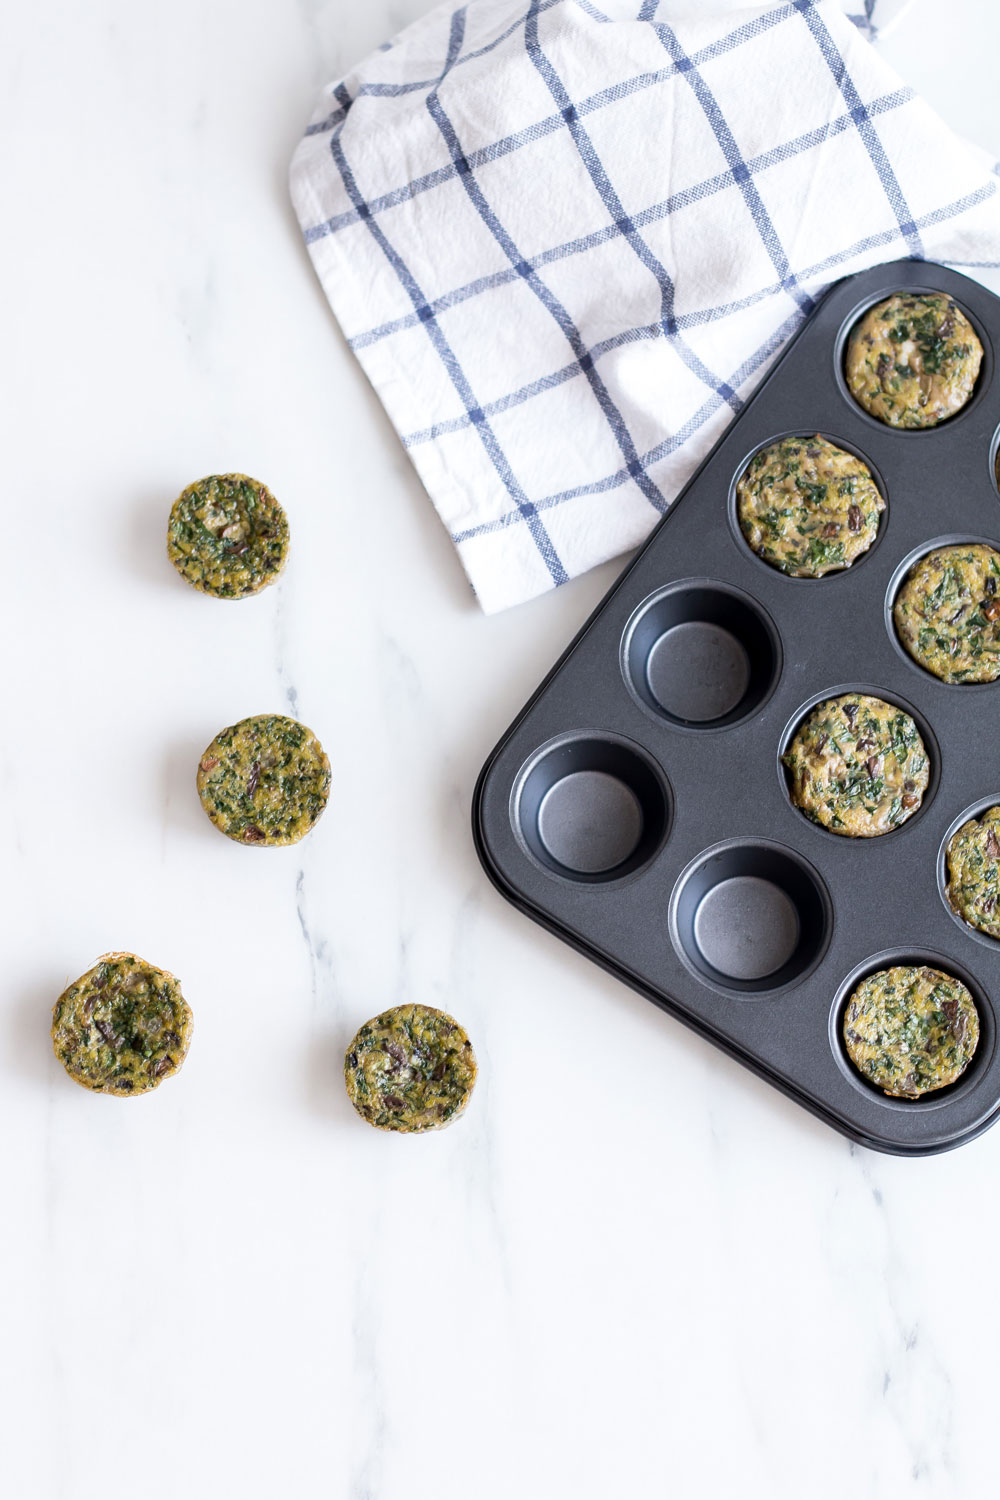 Clean Green Veggie Egg Muffins Recipe: Gluten-free, low-carb and only 35 calories each! https://www.spotebi.com/recipes/clean-green-veggie-egg-muffins/